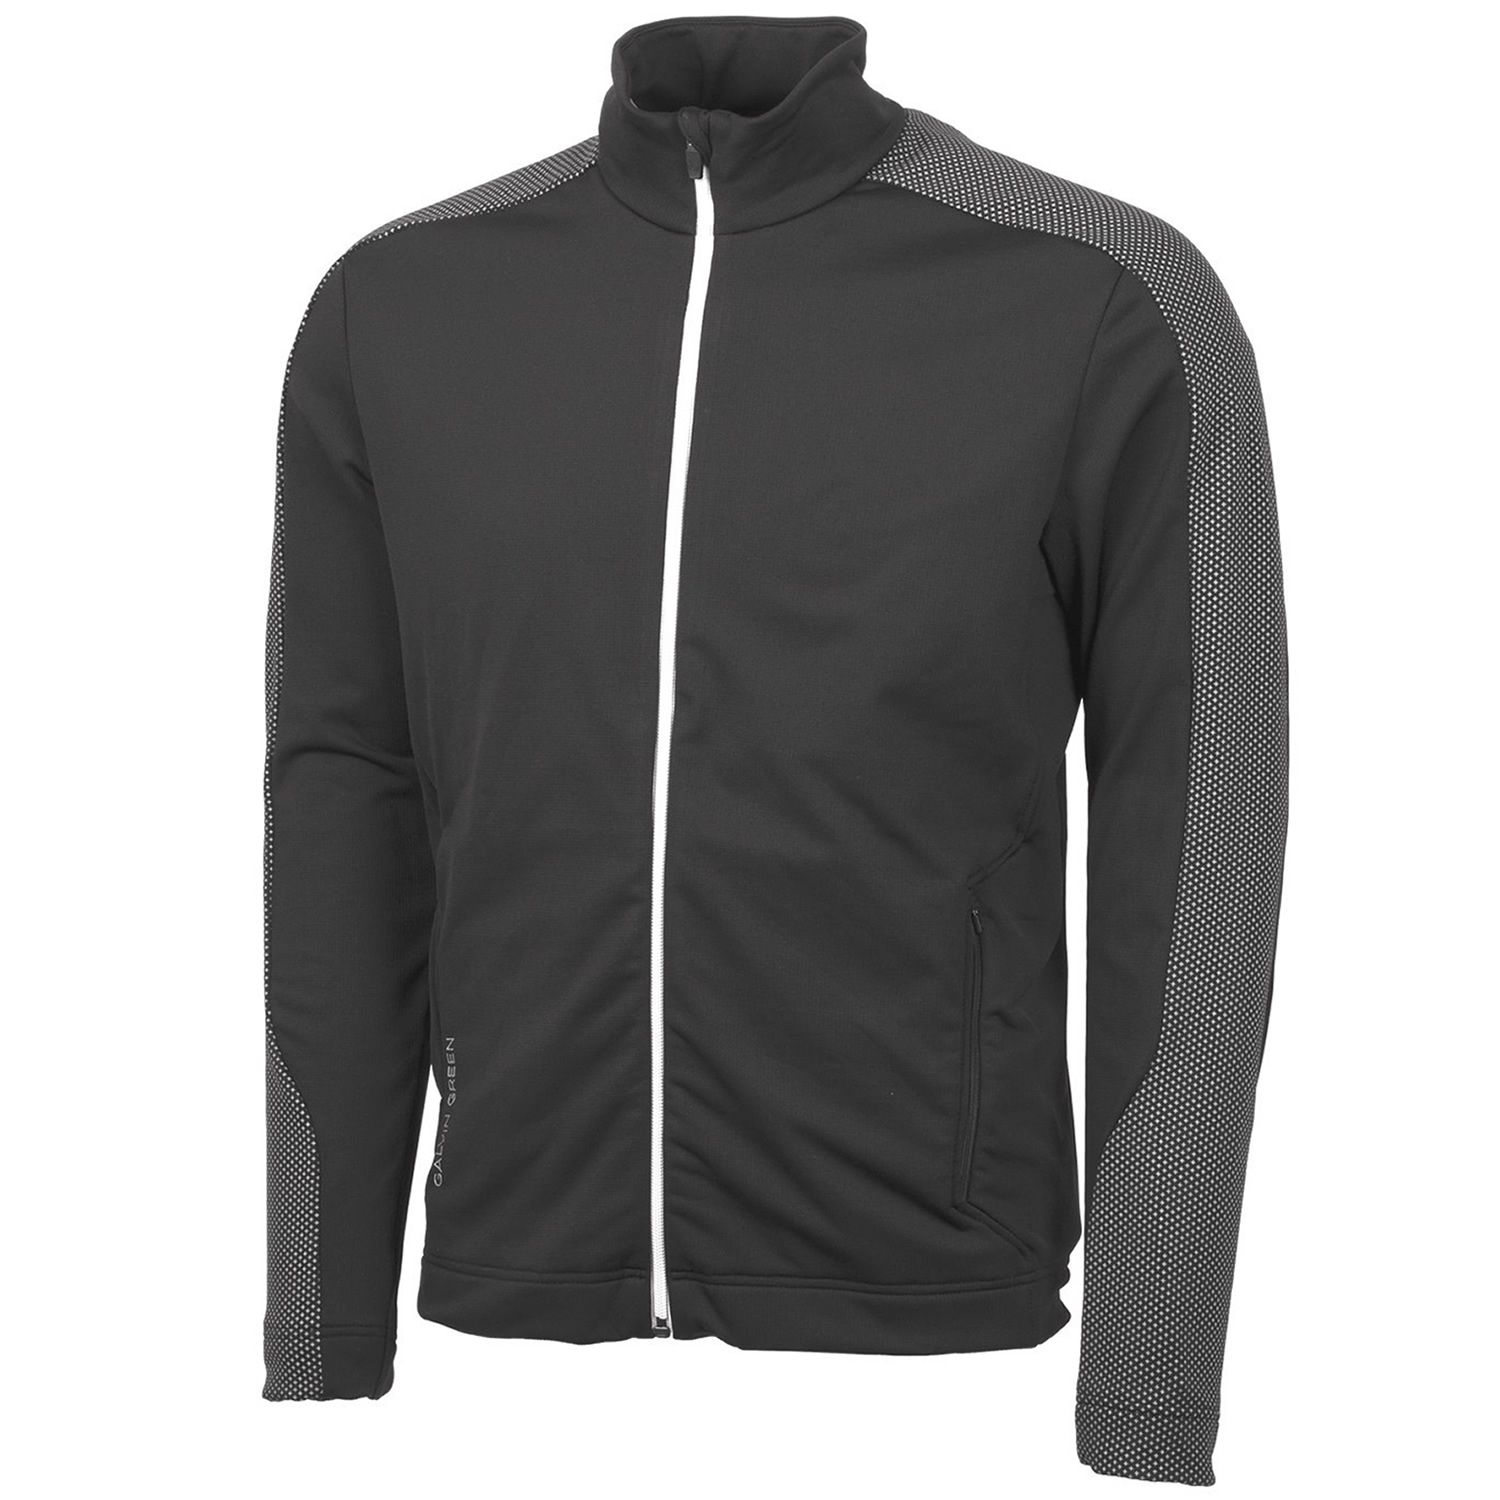 Image of Galvin Green Dirk Insula Jacket